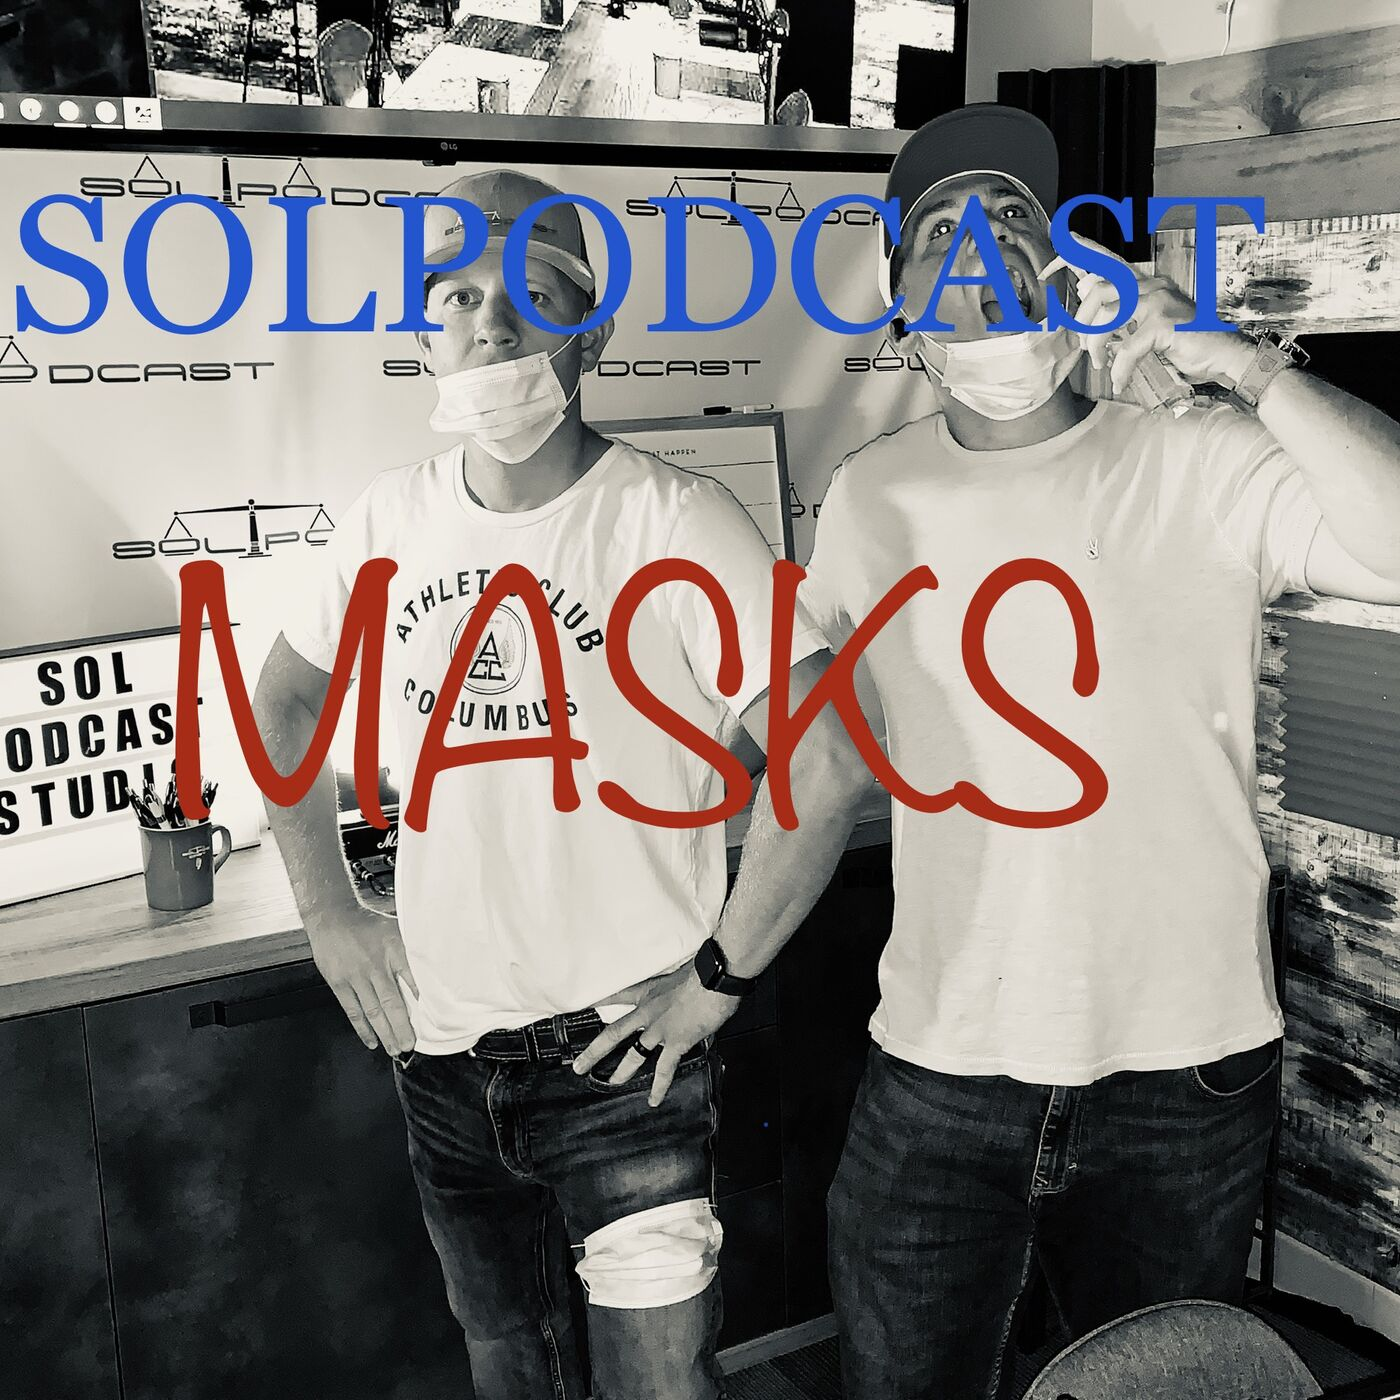 What's Behind the Mask - Do They Work?